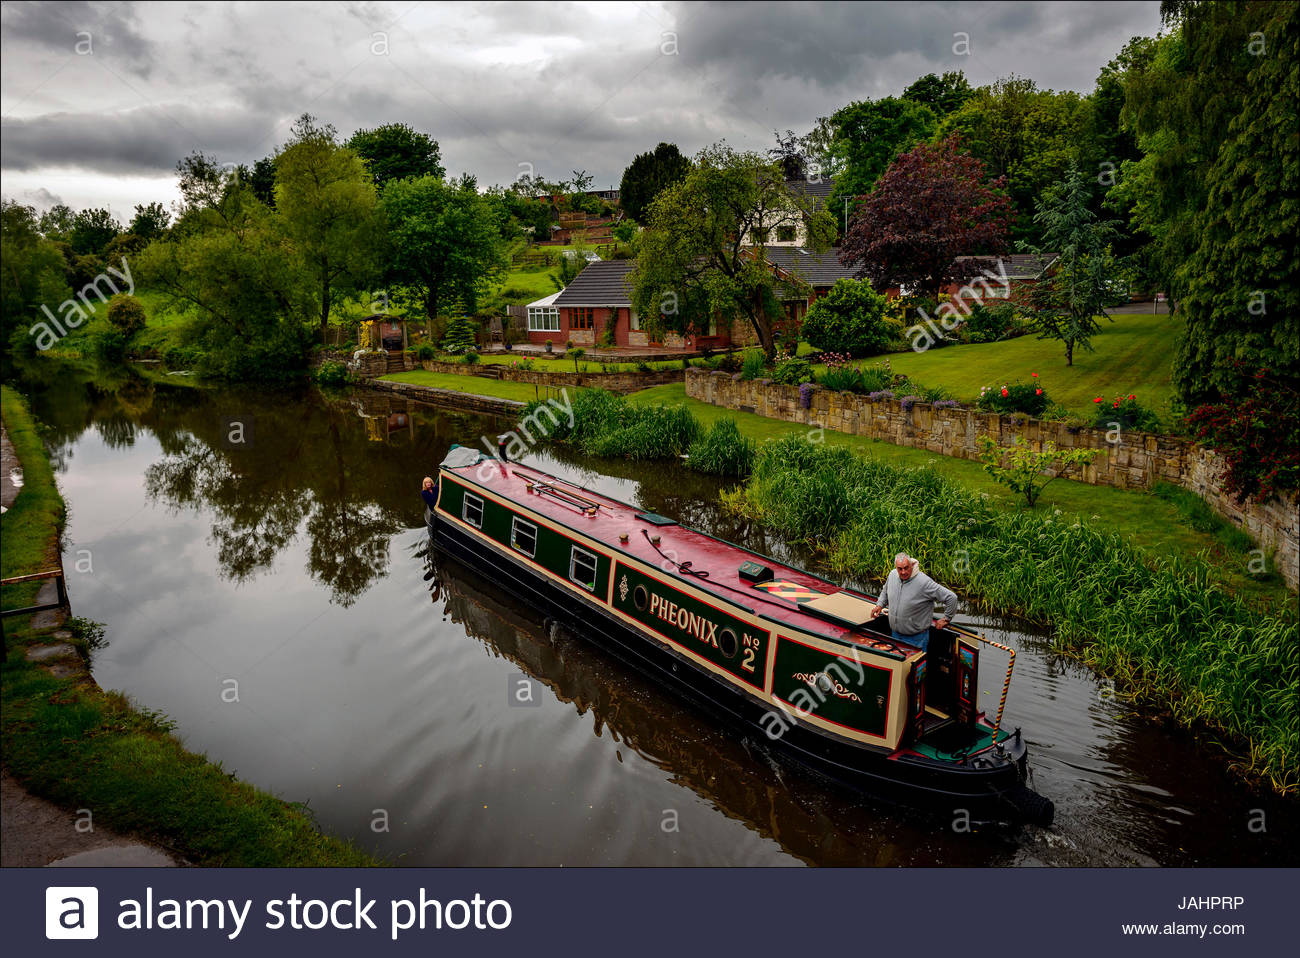 Near Wigan, a pleasure boat cruises the 127 mile long Leeds and Liverpool canal, the longest in northern England. - Stock Image